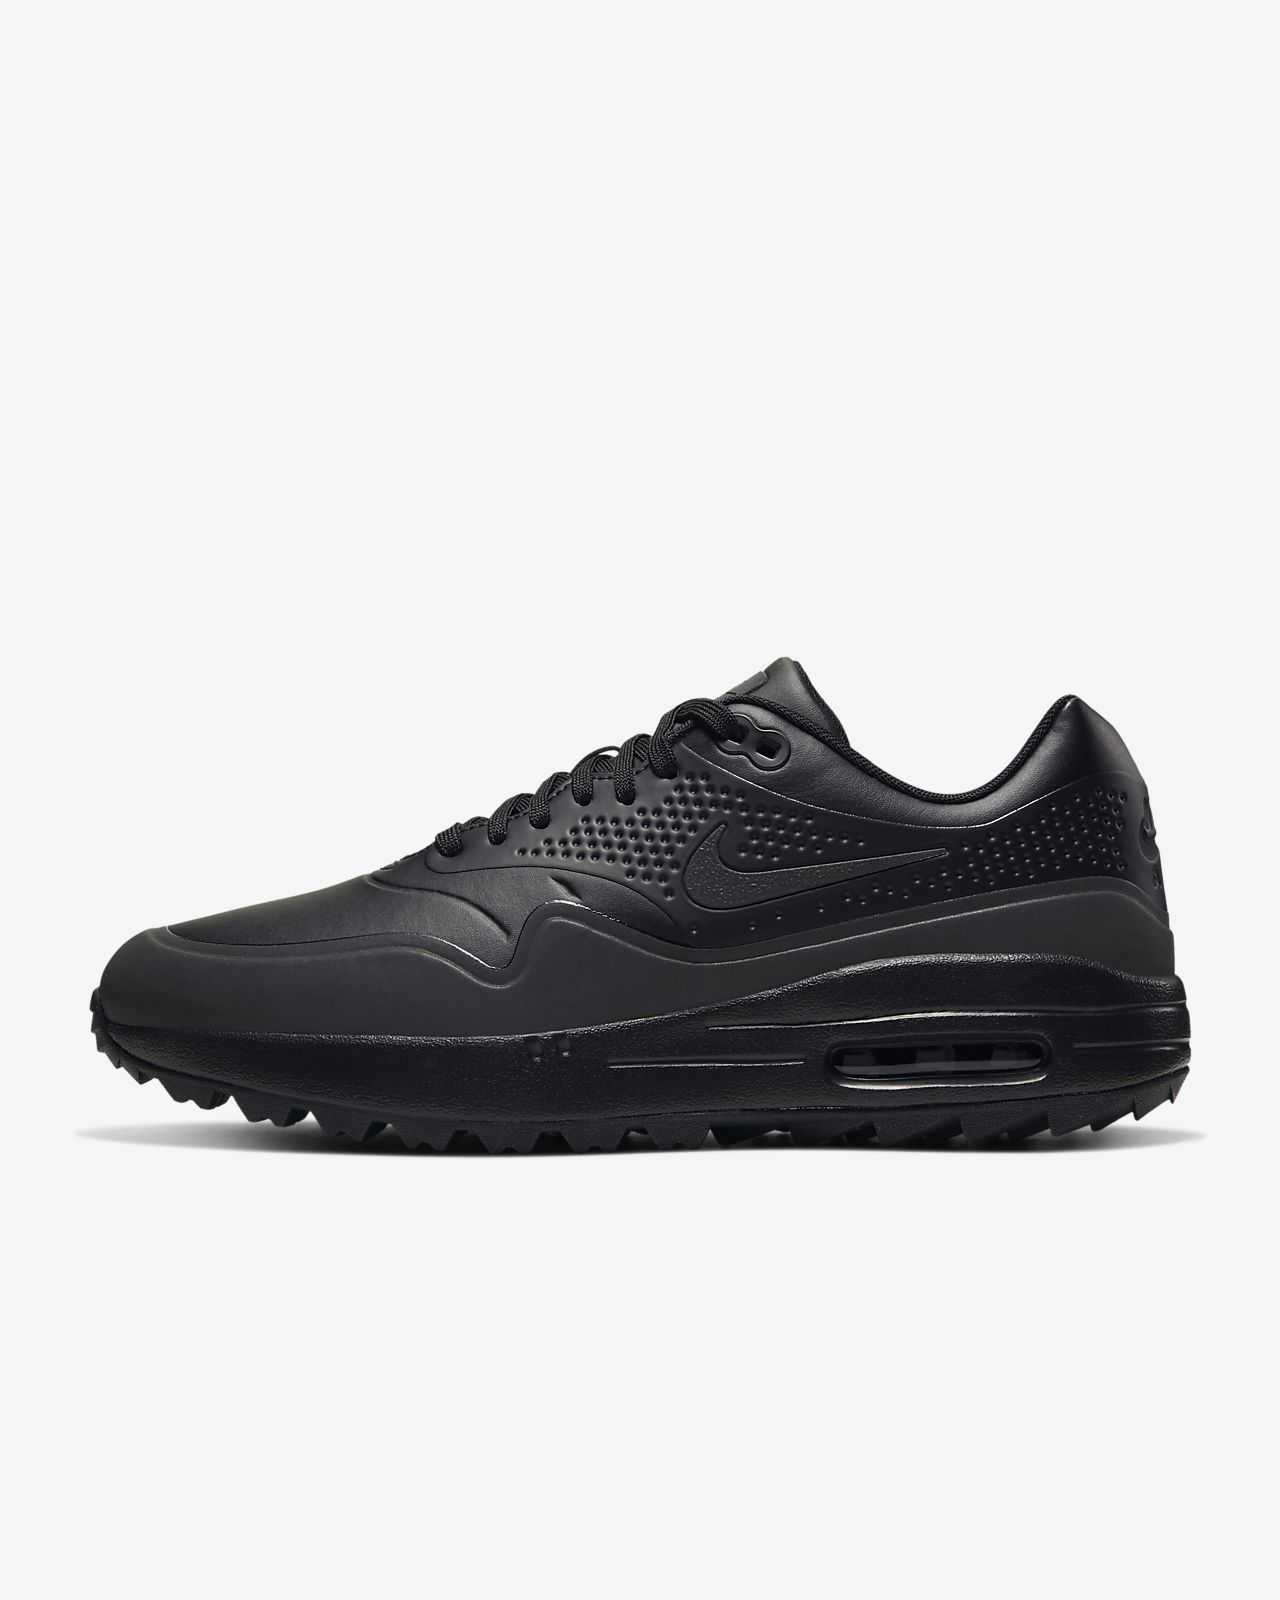 Nike Air Max Plus Men's Casual Sneakers Black,Sand